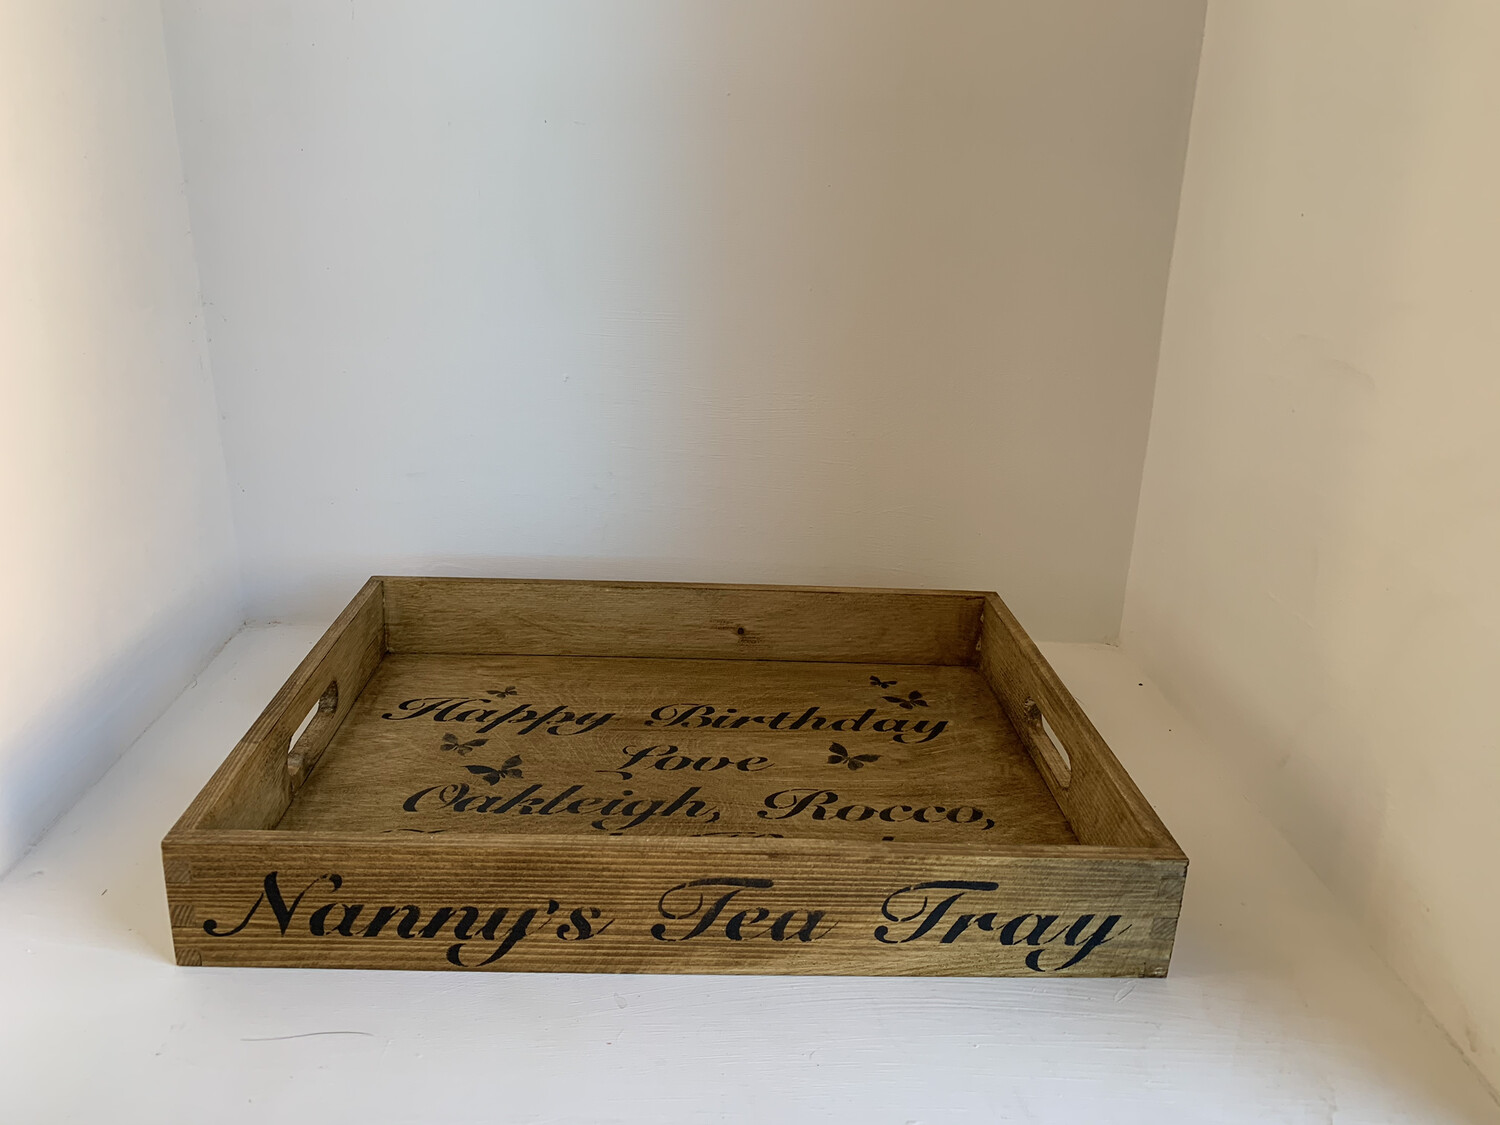 Mum's Dad's Nan's Nanny's Granny's Name Tea Tray decorative shabby chic wooden drinks tea tray  Free UK P&P